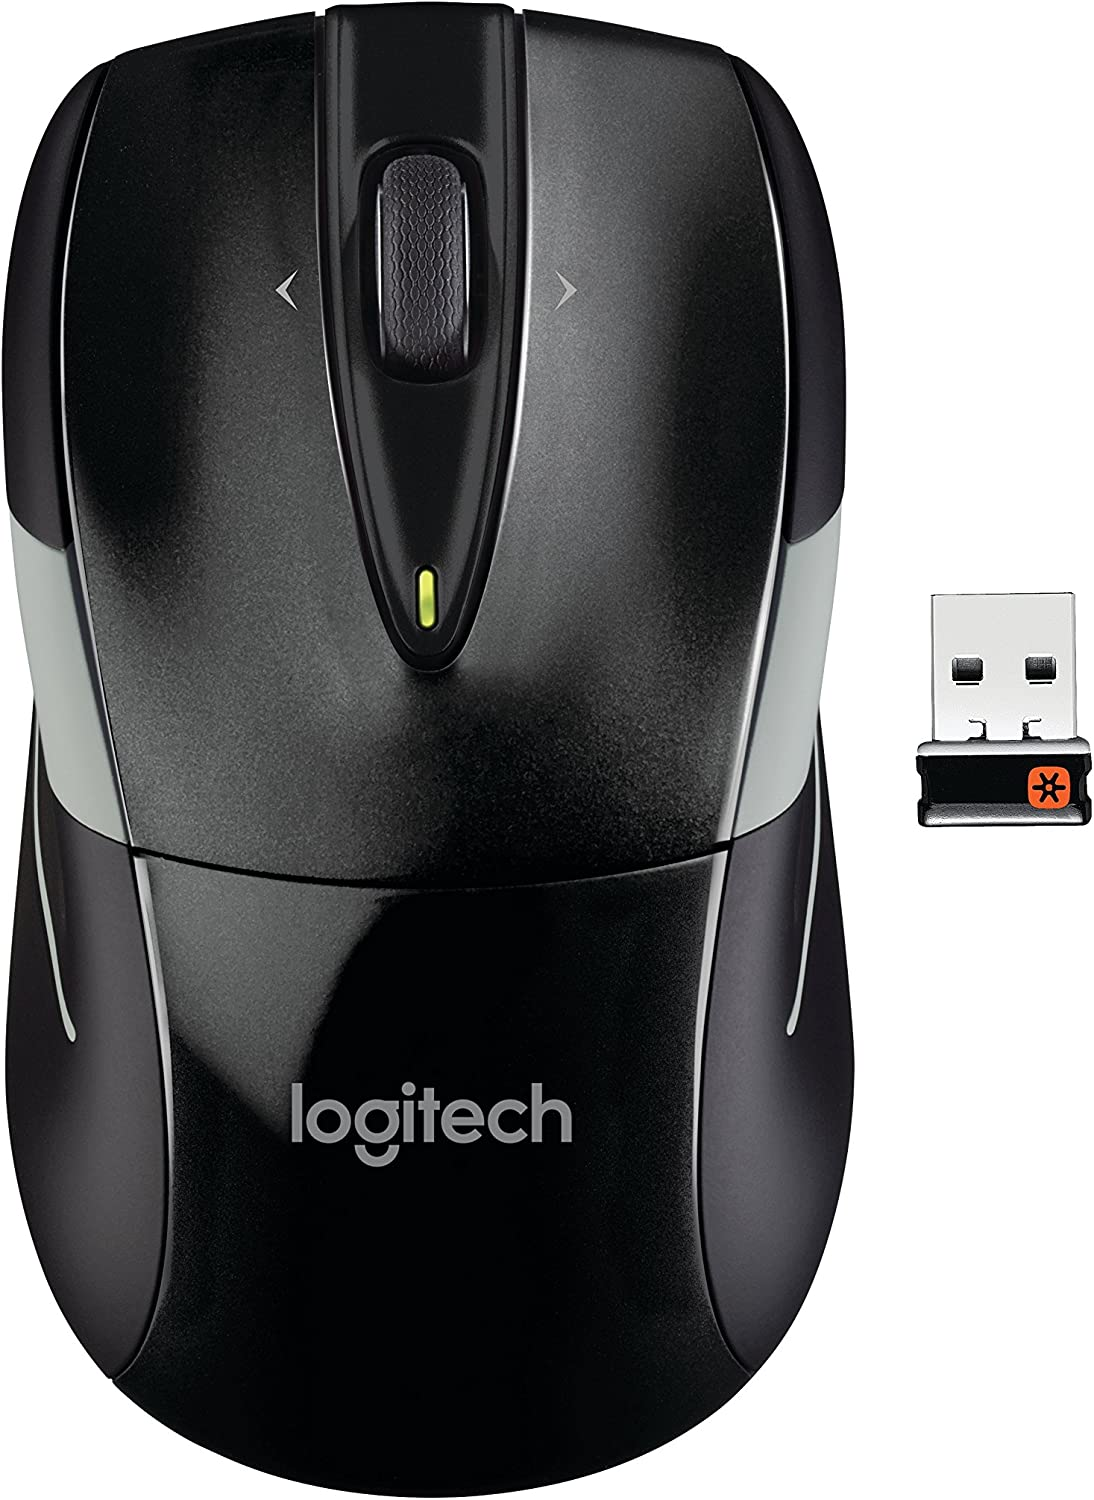 Logitech M525 Wireless Mouse – Long 3 Year Battery Life, Ergonomic Shape for Right or Left Hand Use, Micro-Precision Scroll Wheel, and USB Unifying Receiver for Computers and Laptops, Black/Gray: Electronics